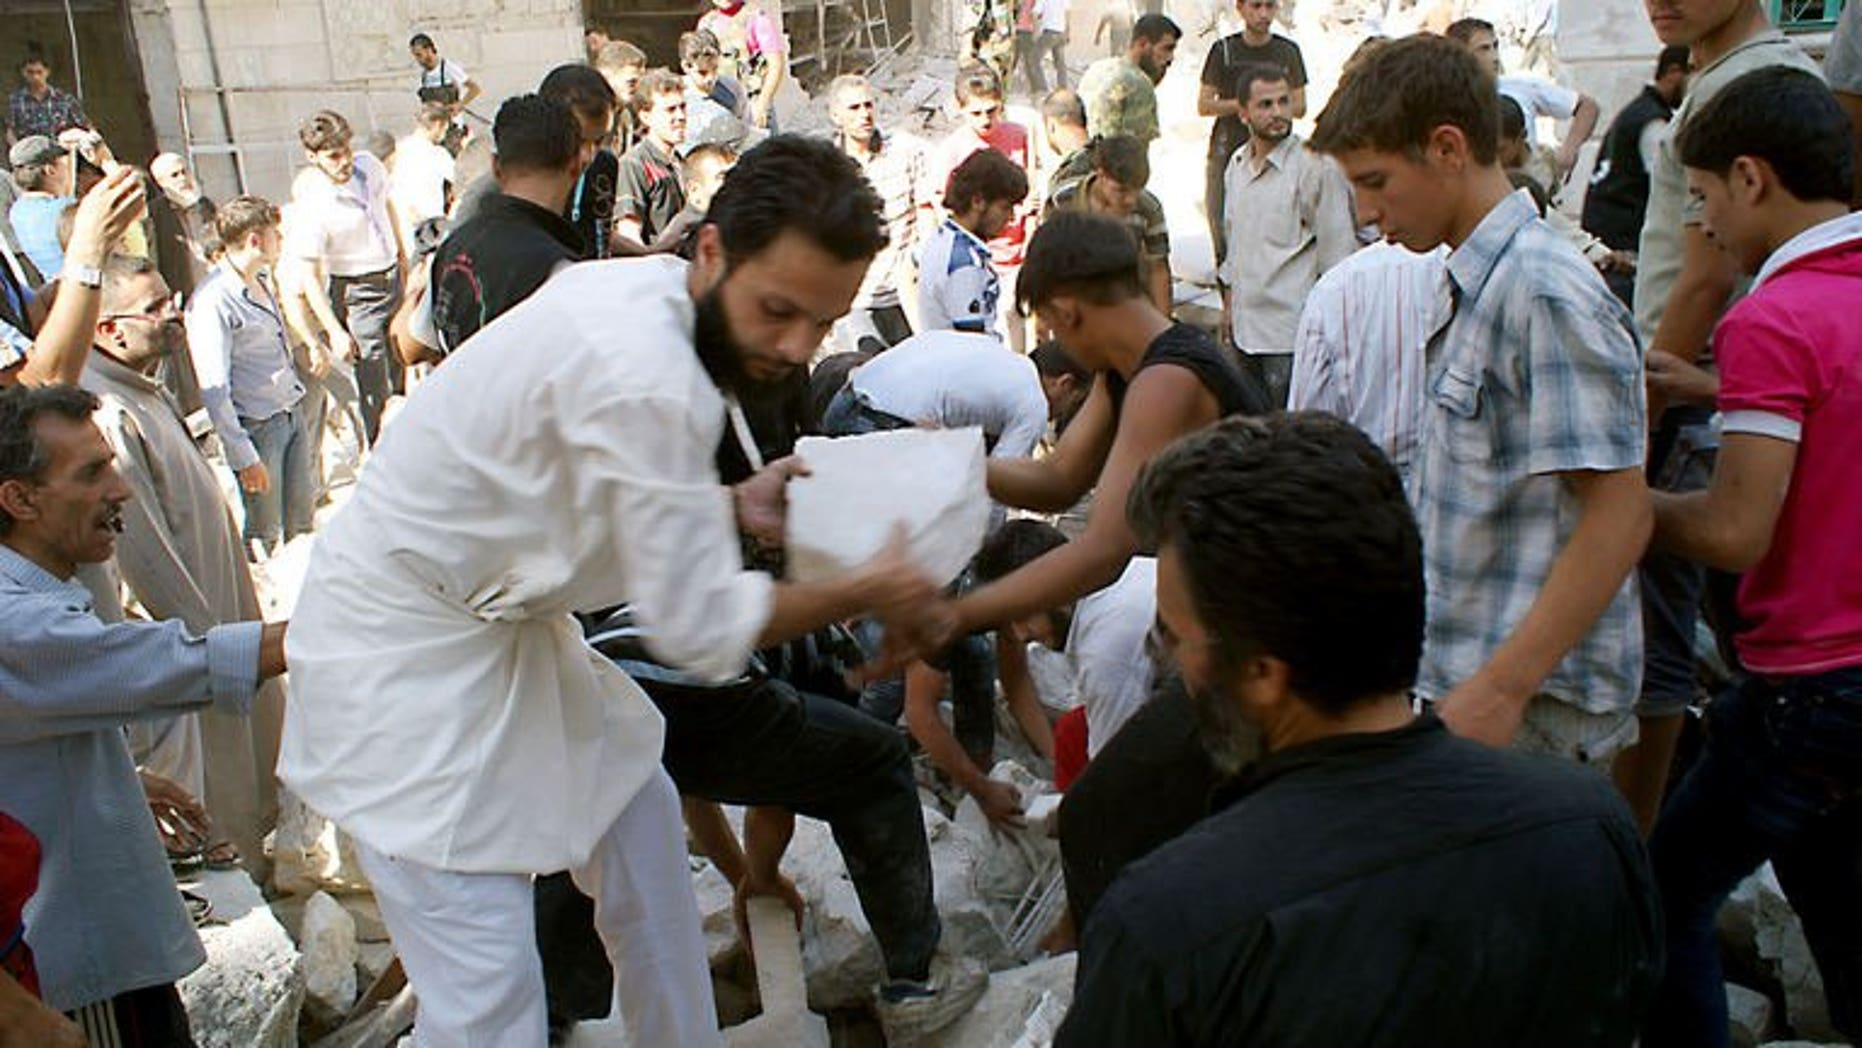 Rescuers and neighboors removes chunks of rubble from a partially collapsed building after a rocketed slammed into the side of a residential block located next to a mosque in Aleppo, Syria on June 29, 2013. The Gulf Arab nations and the European Union pledged Sunday to pool their efforts to help convene a peace conference on Syria, as they wrapped up a one-day ministerial meeting in Bahrain.